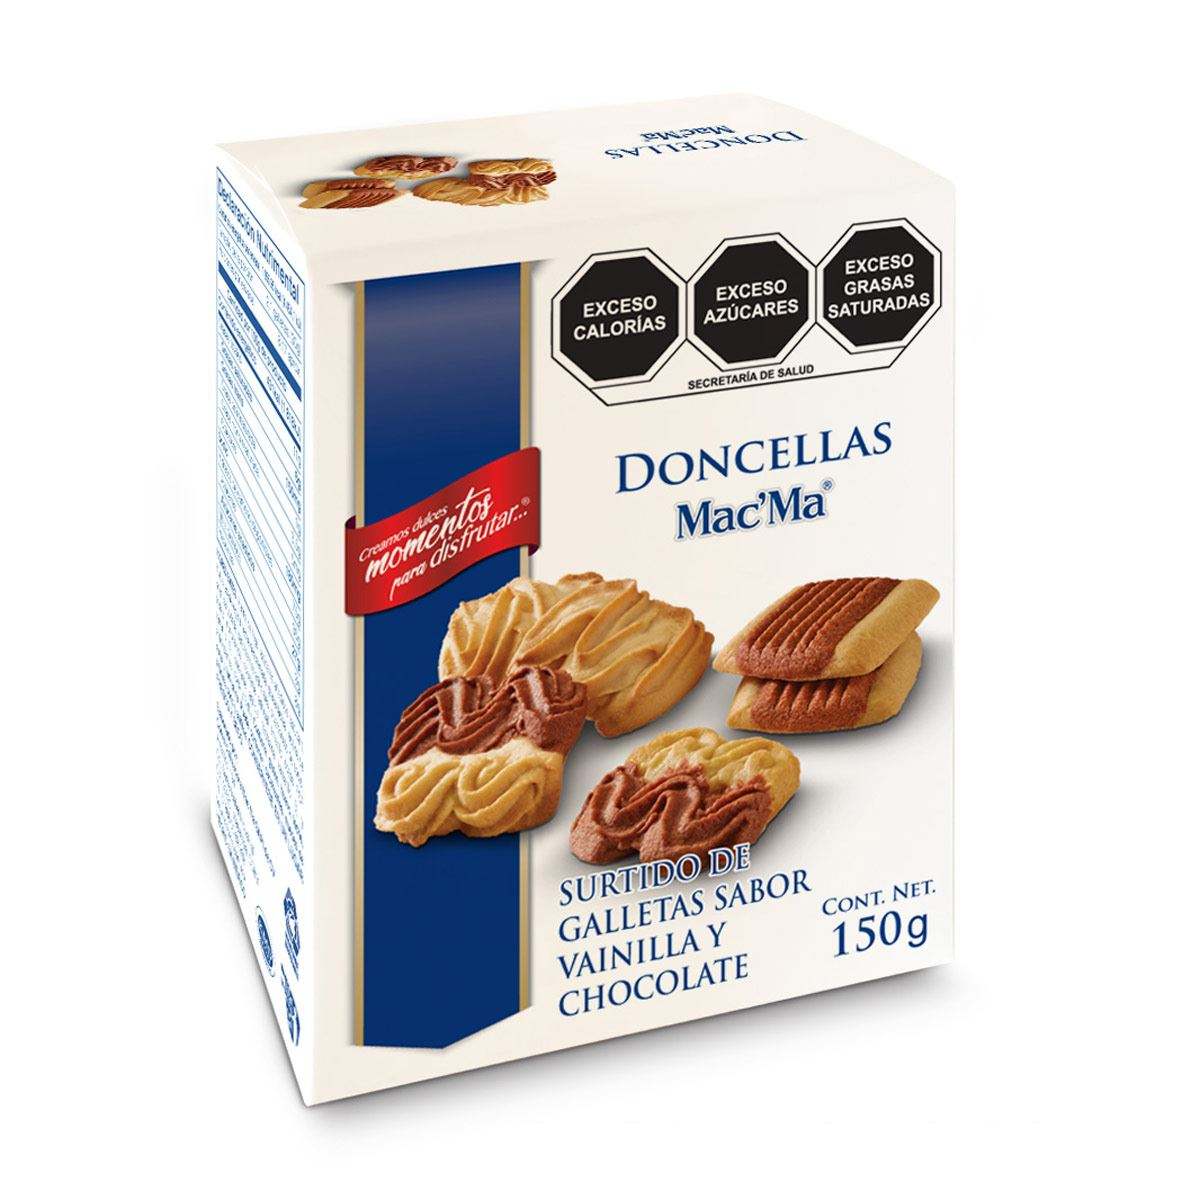 Galletas sabor Mantequilla Danesillas Mac' Ma 150g